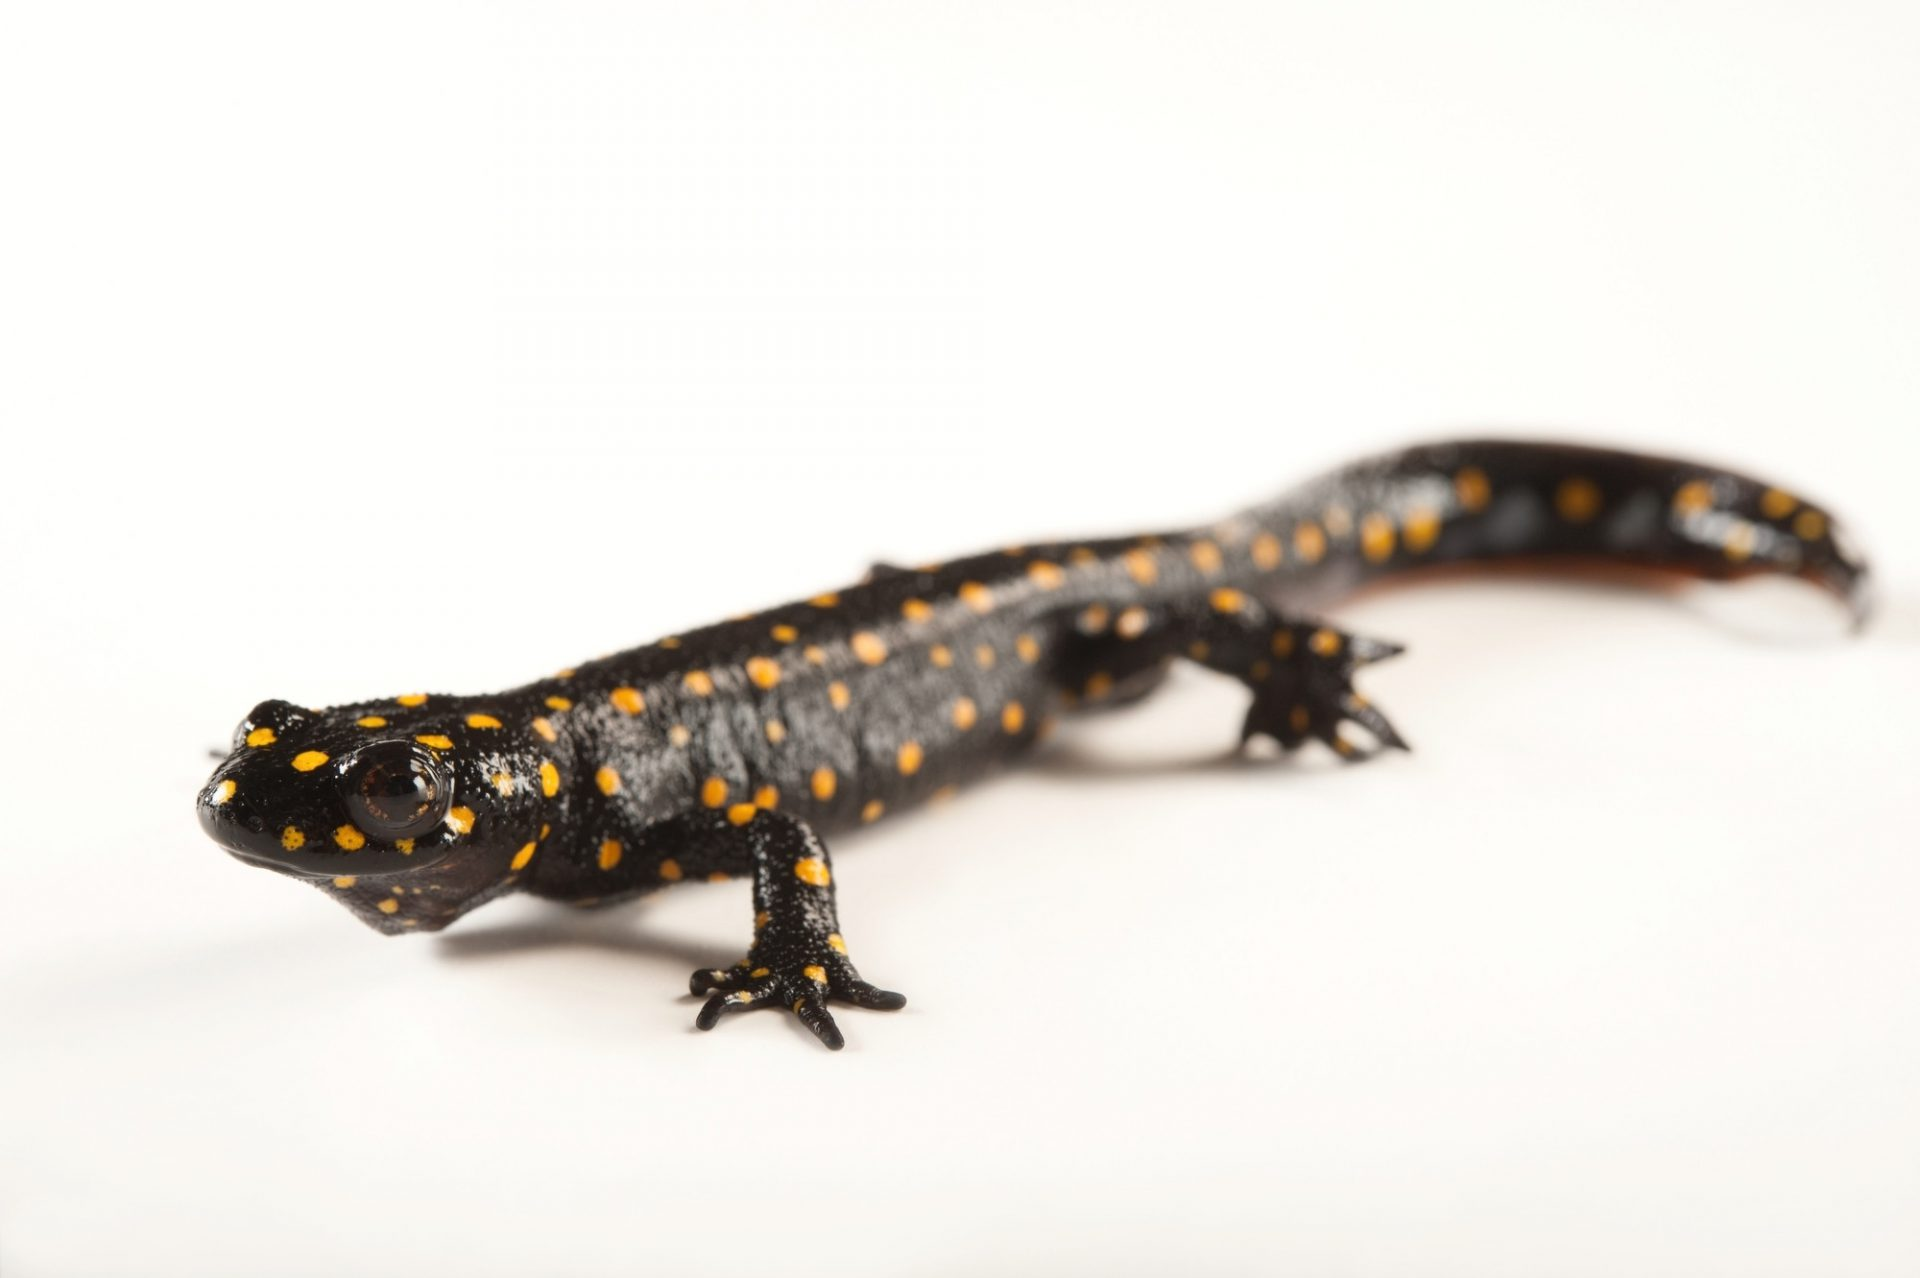 A vulnerable Strauch's spotted newt (Neurergus strauchii) at the Sedgwick County Zoo in Wichita, Kansas.